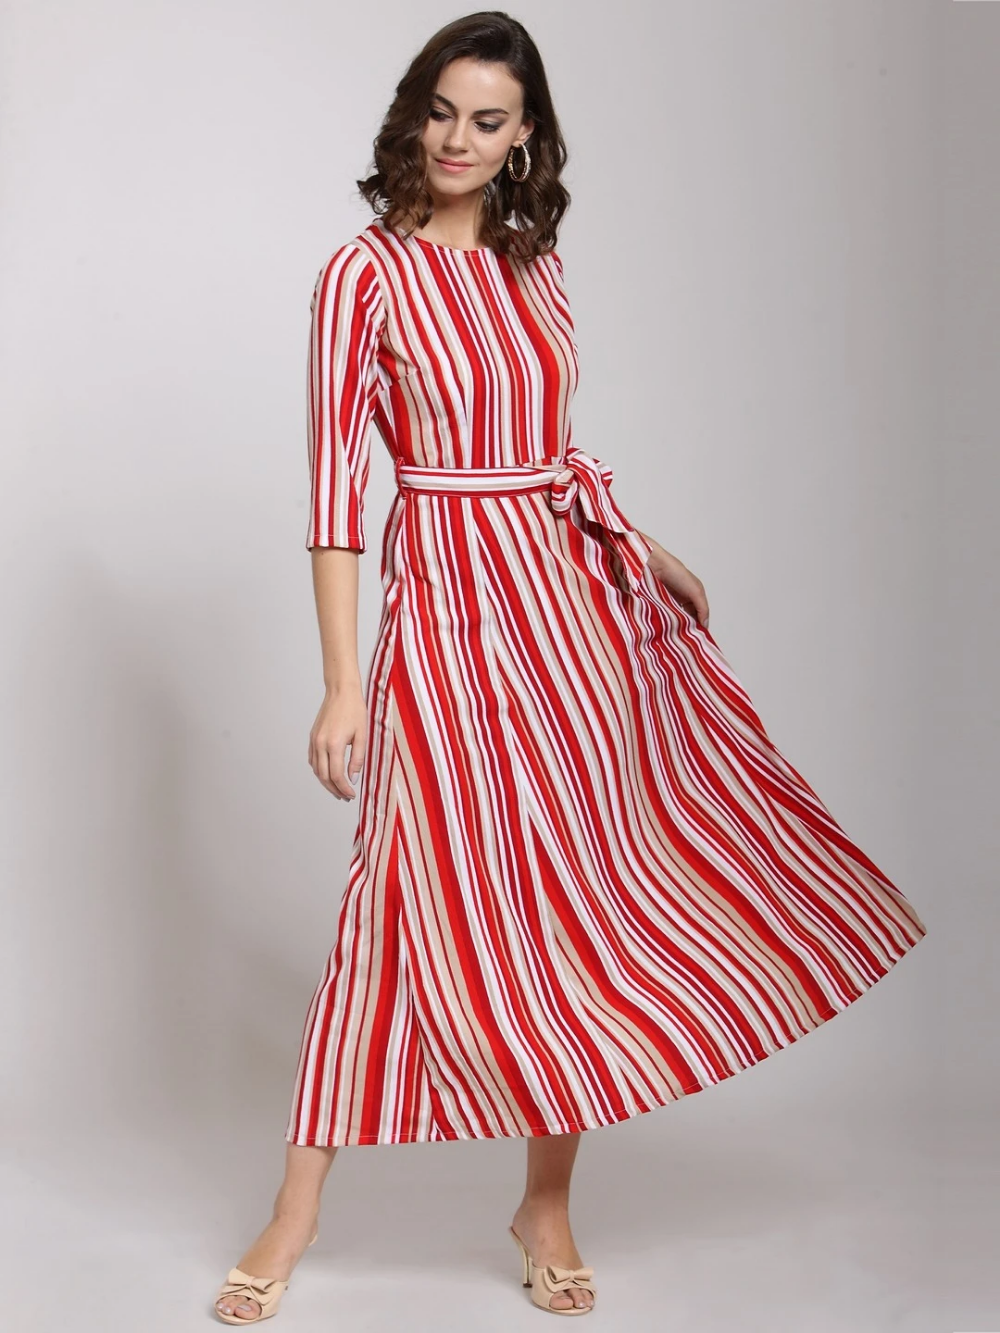 Red Striped Fit And Flare Dress Fit And Flare Dress Flare Dress Frock For Women [ 1333 x 1000 Pixel ]